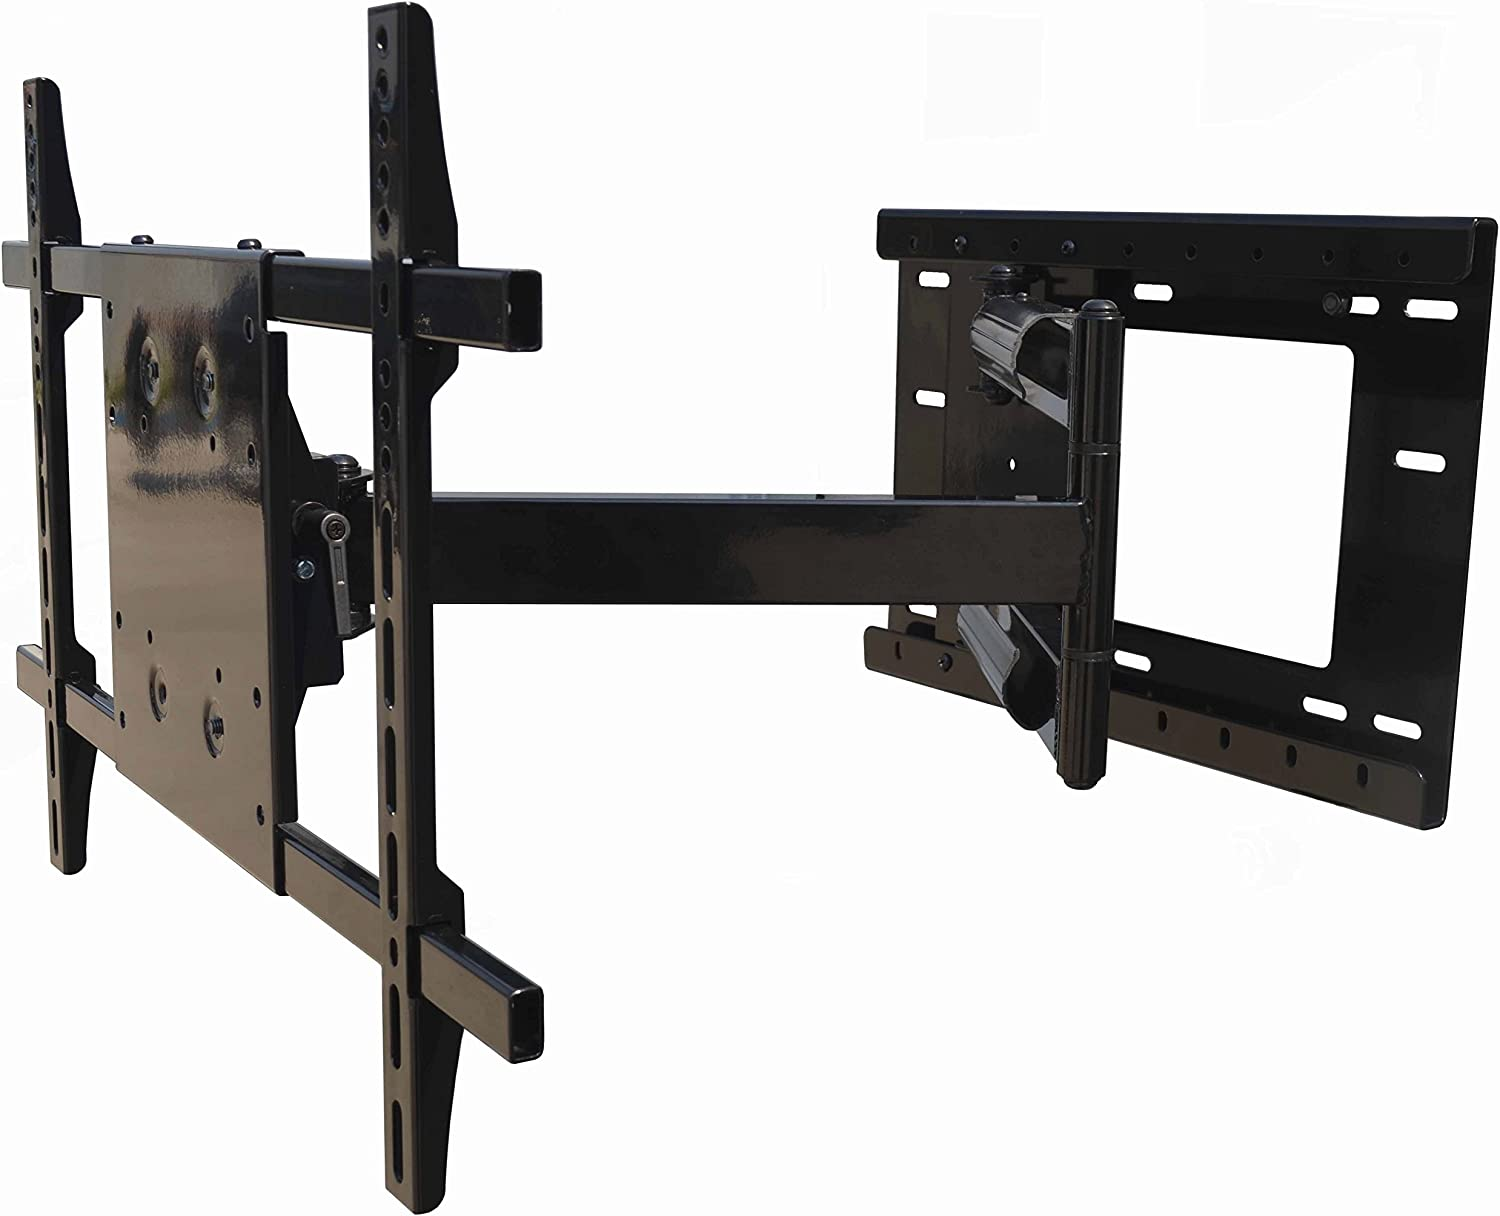 THE MOUNT STORE TV Spasm price Wall Mount for Class Roku TCL Series 65